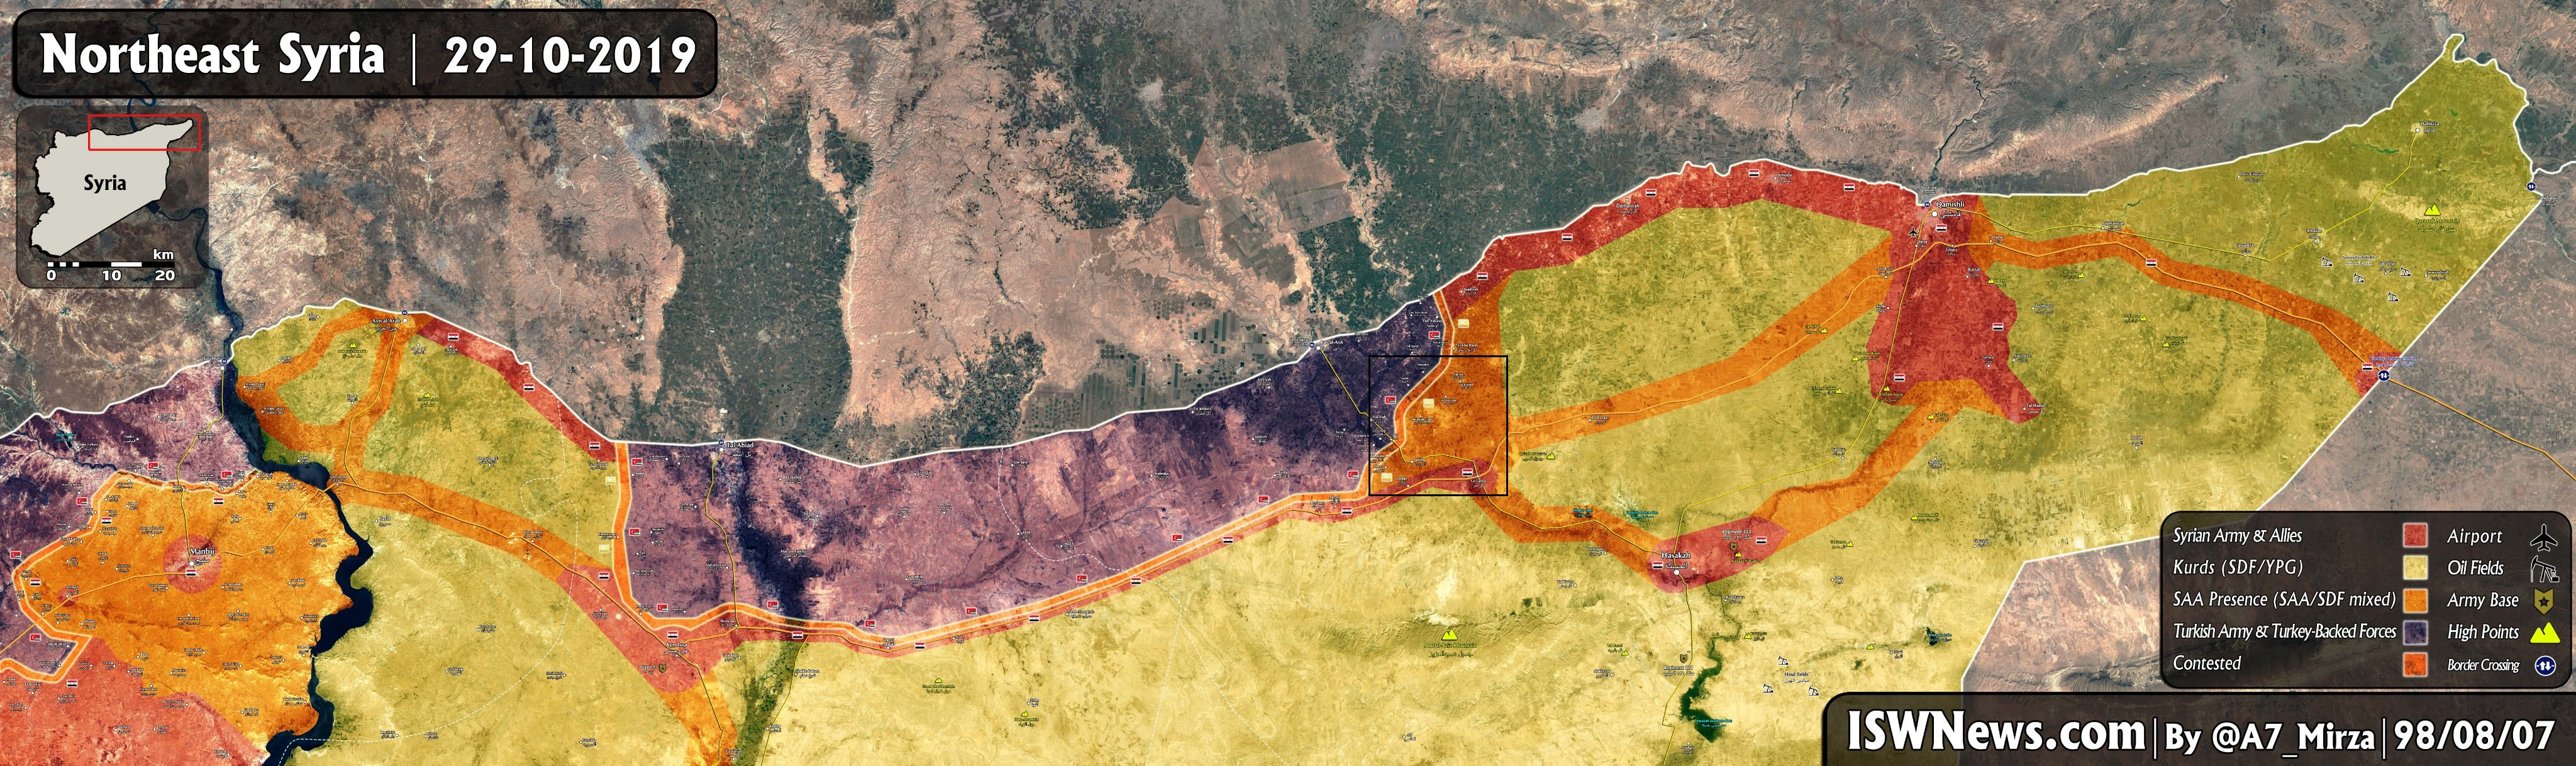 Turkish-Backed Militants Launch Large Attack South Of Ras Al-Ayn, Capture Several Villages